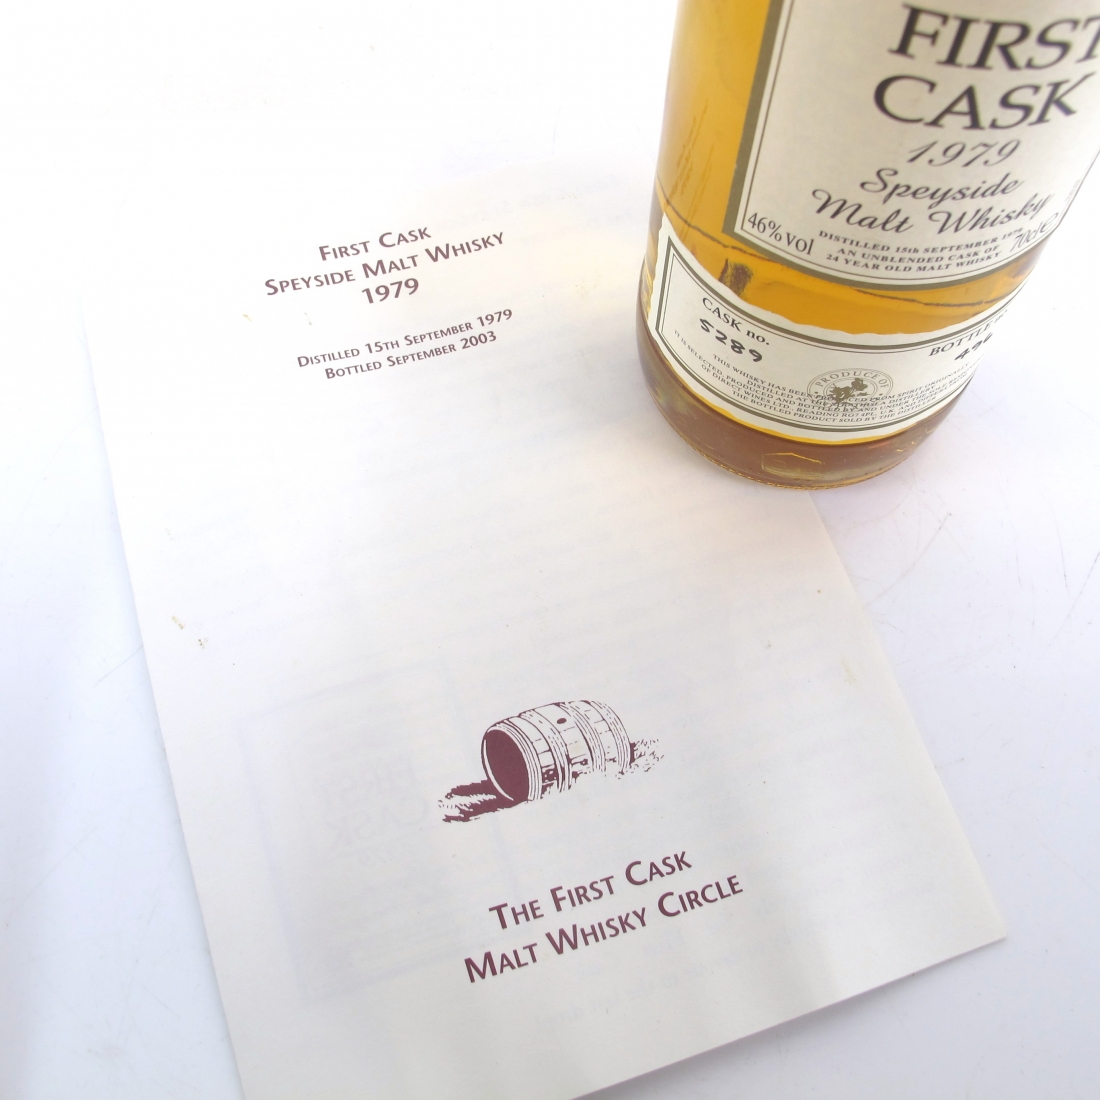 Strathisla 1979 First Cask 24 Year Old